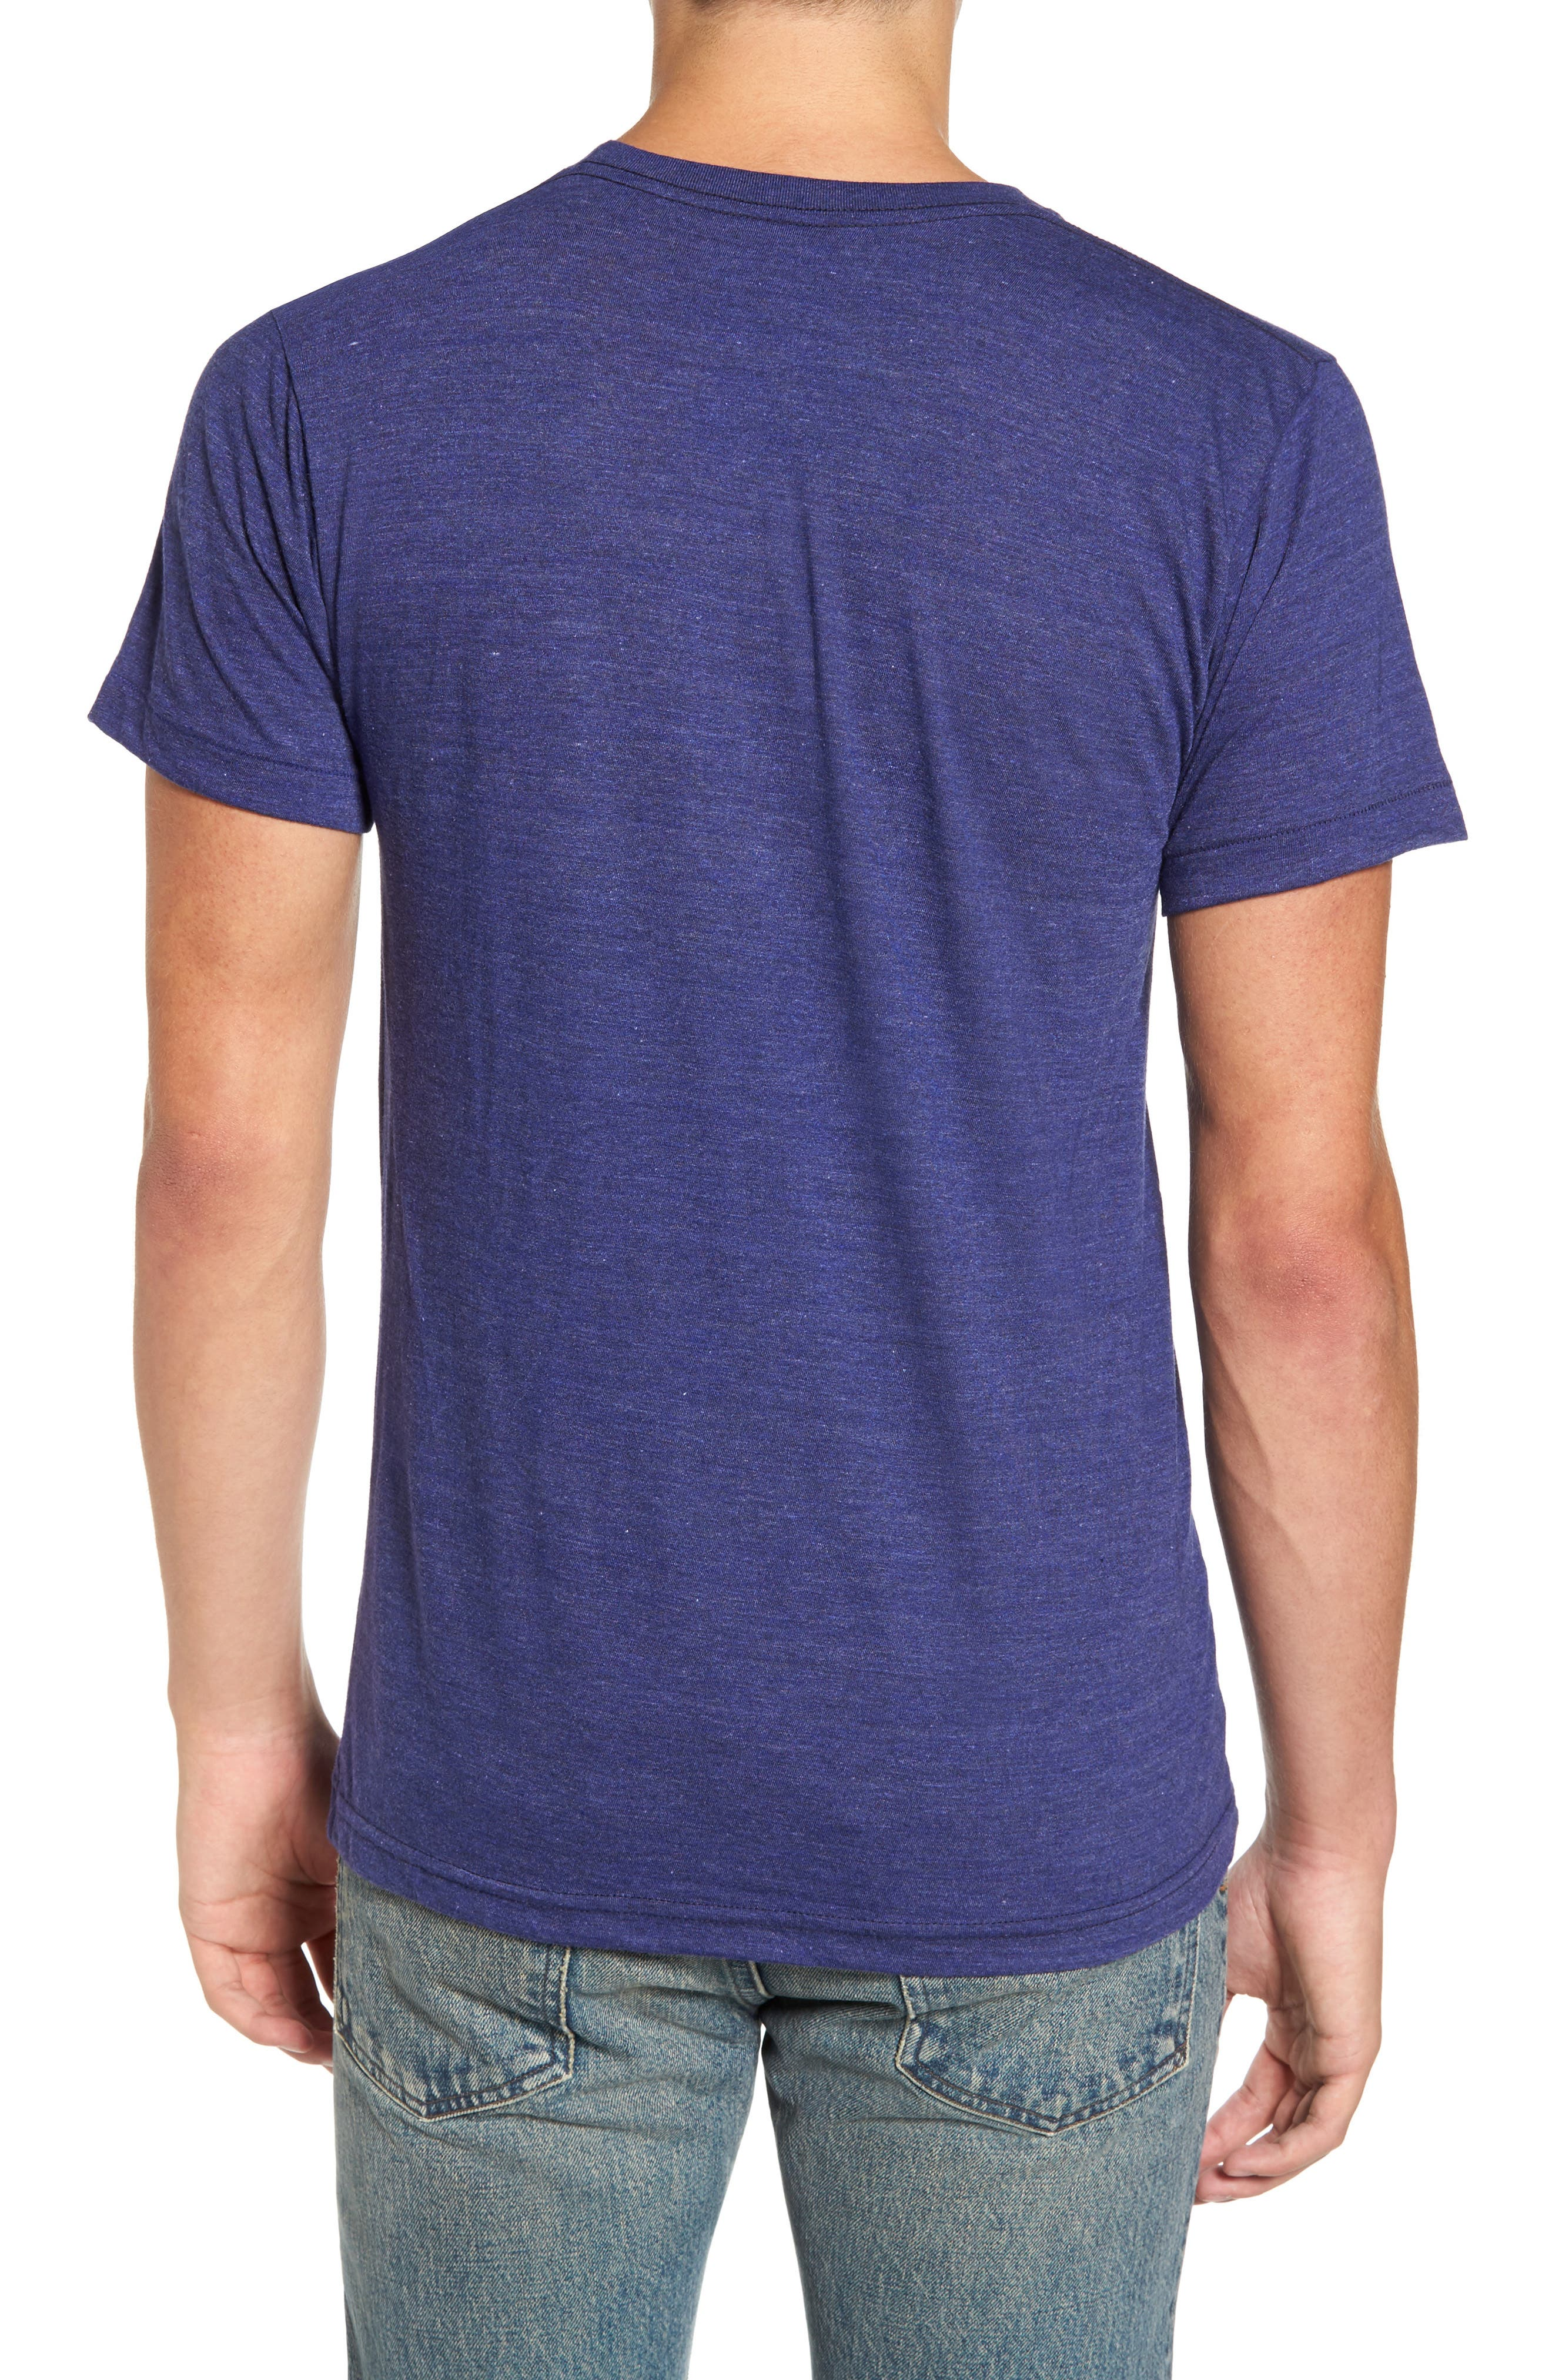 NW Trident Embroidered T-Shirt,                             Alternate thumbnail 6, color,